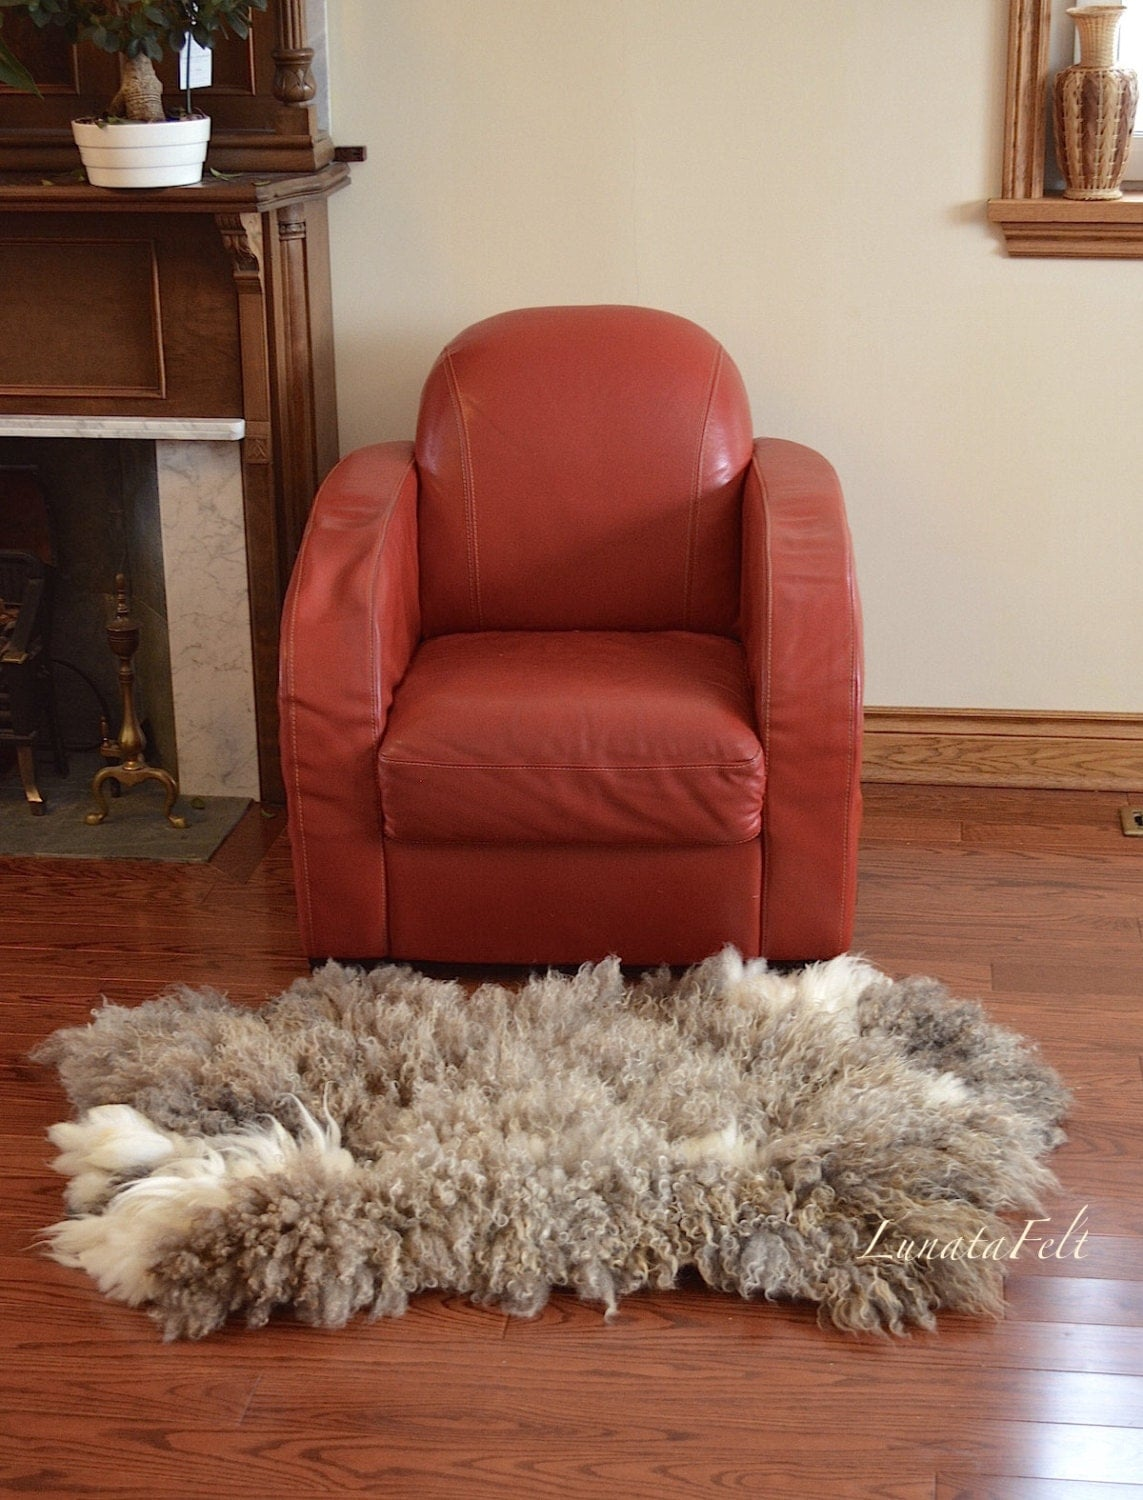 Cute Sheep   OOAK Large Handmade Wool Felt Fur Rug From Natural Sheep And Alpaca  Wool  Pet And Eco Friendly   28x48   To Order Only!